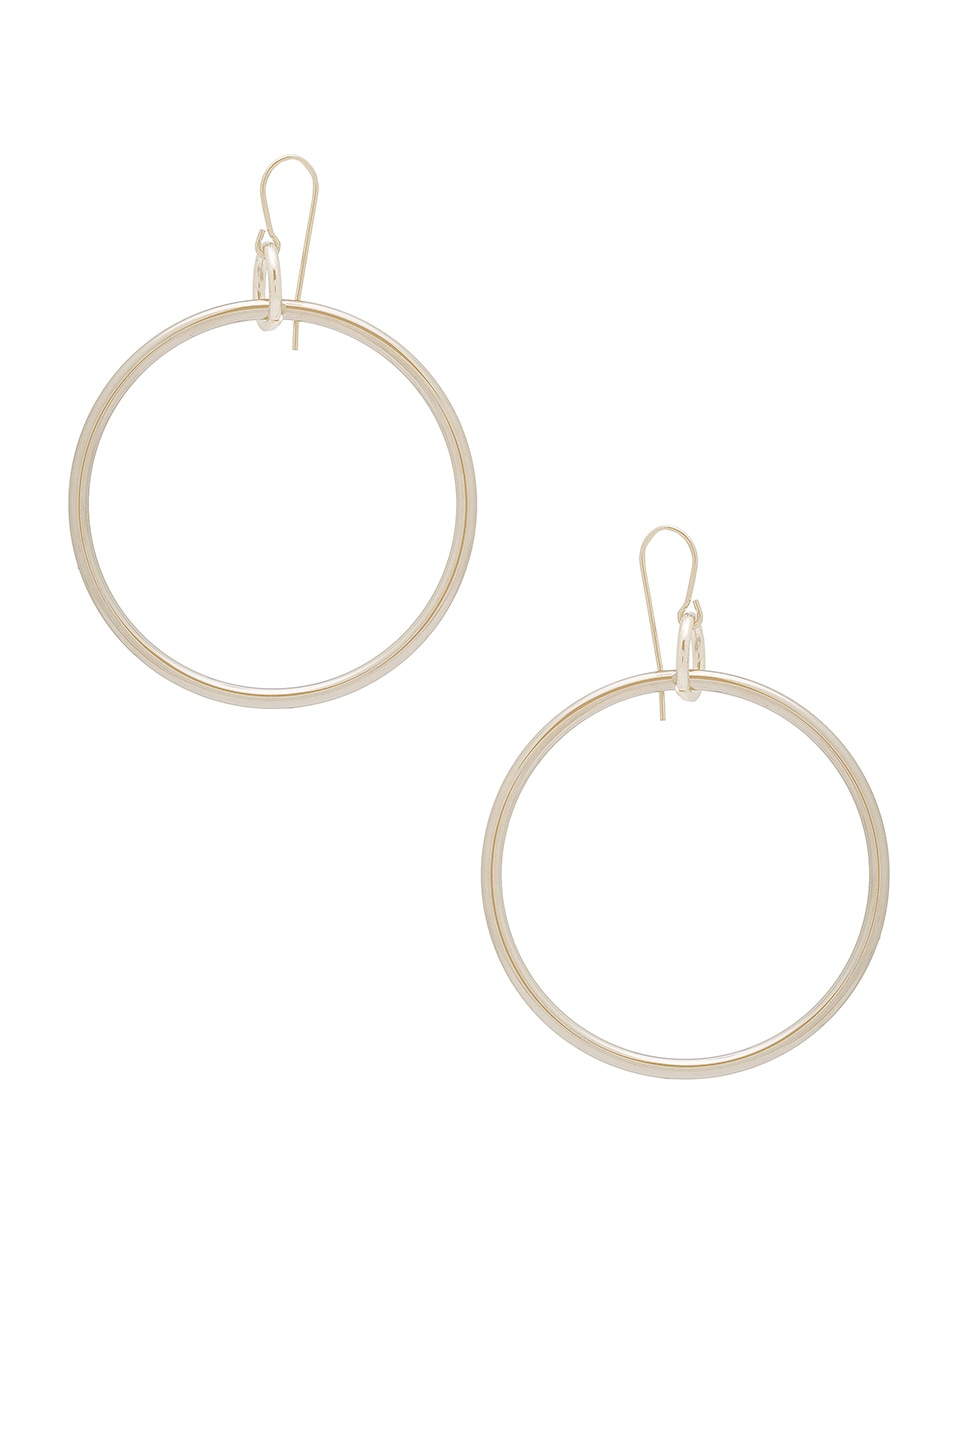 Elizabeth and James Lueur Earrings in Silver